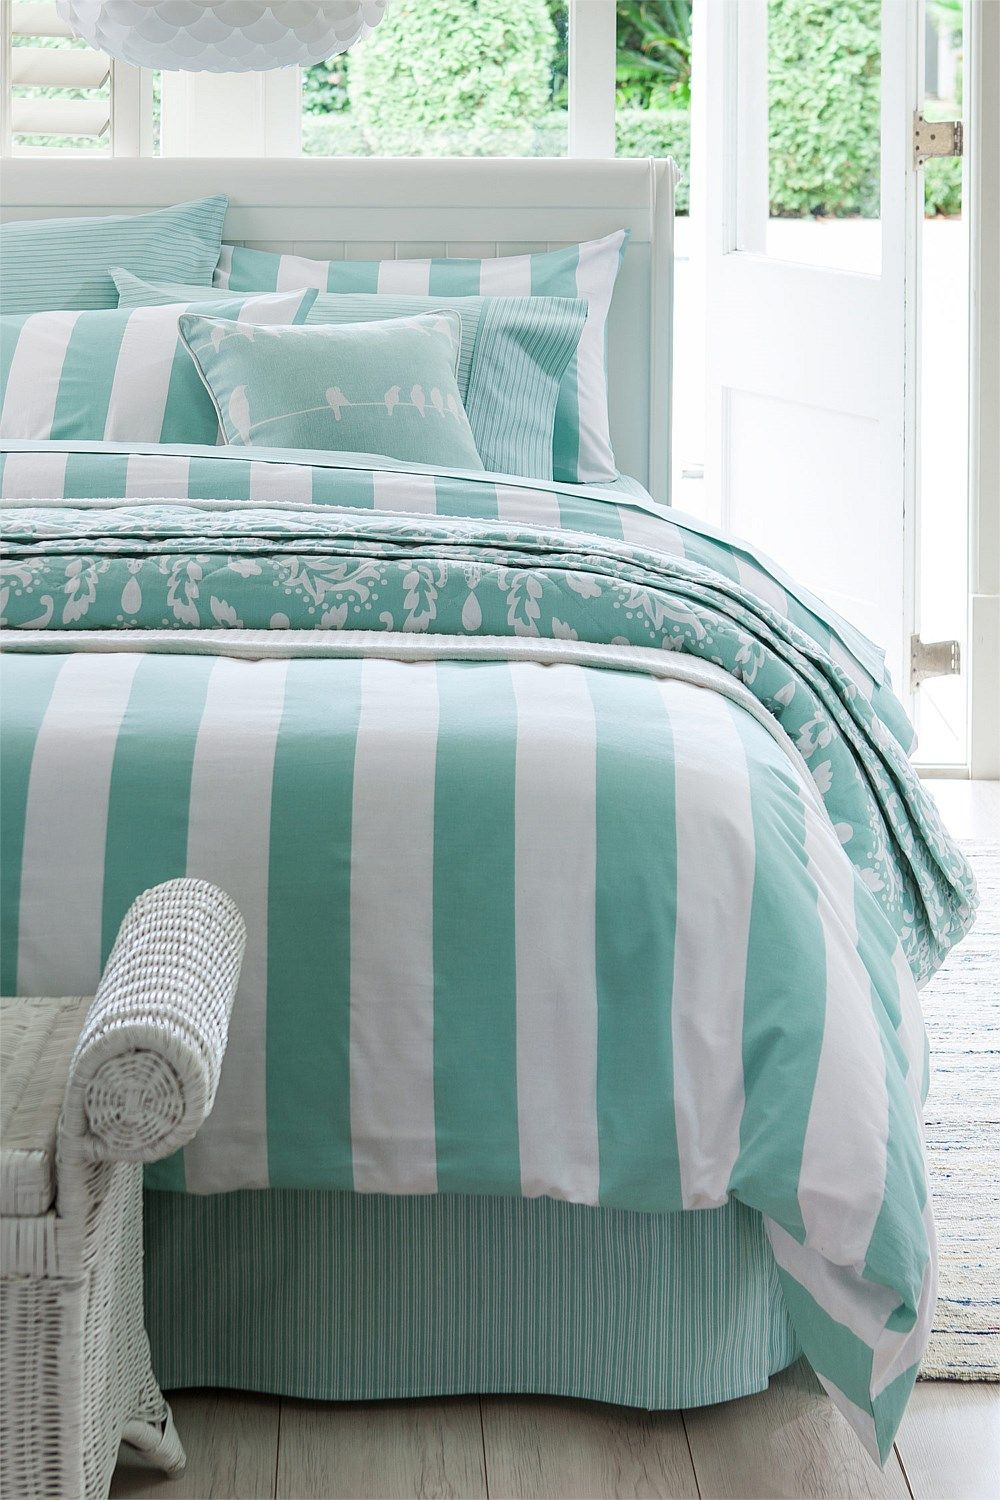 Homeware & Gifts Bedding, Sheets, Furniture, Garden and